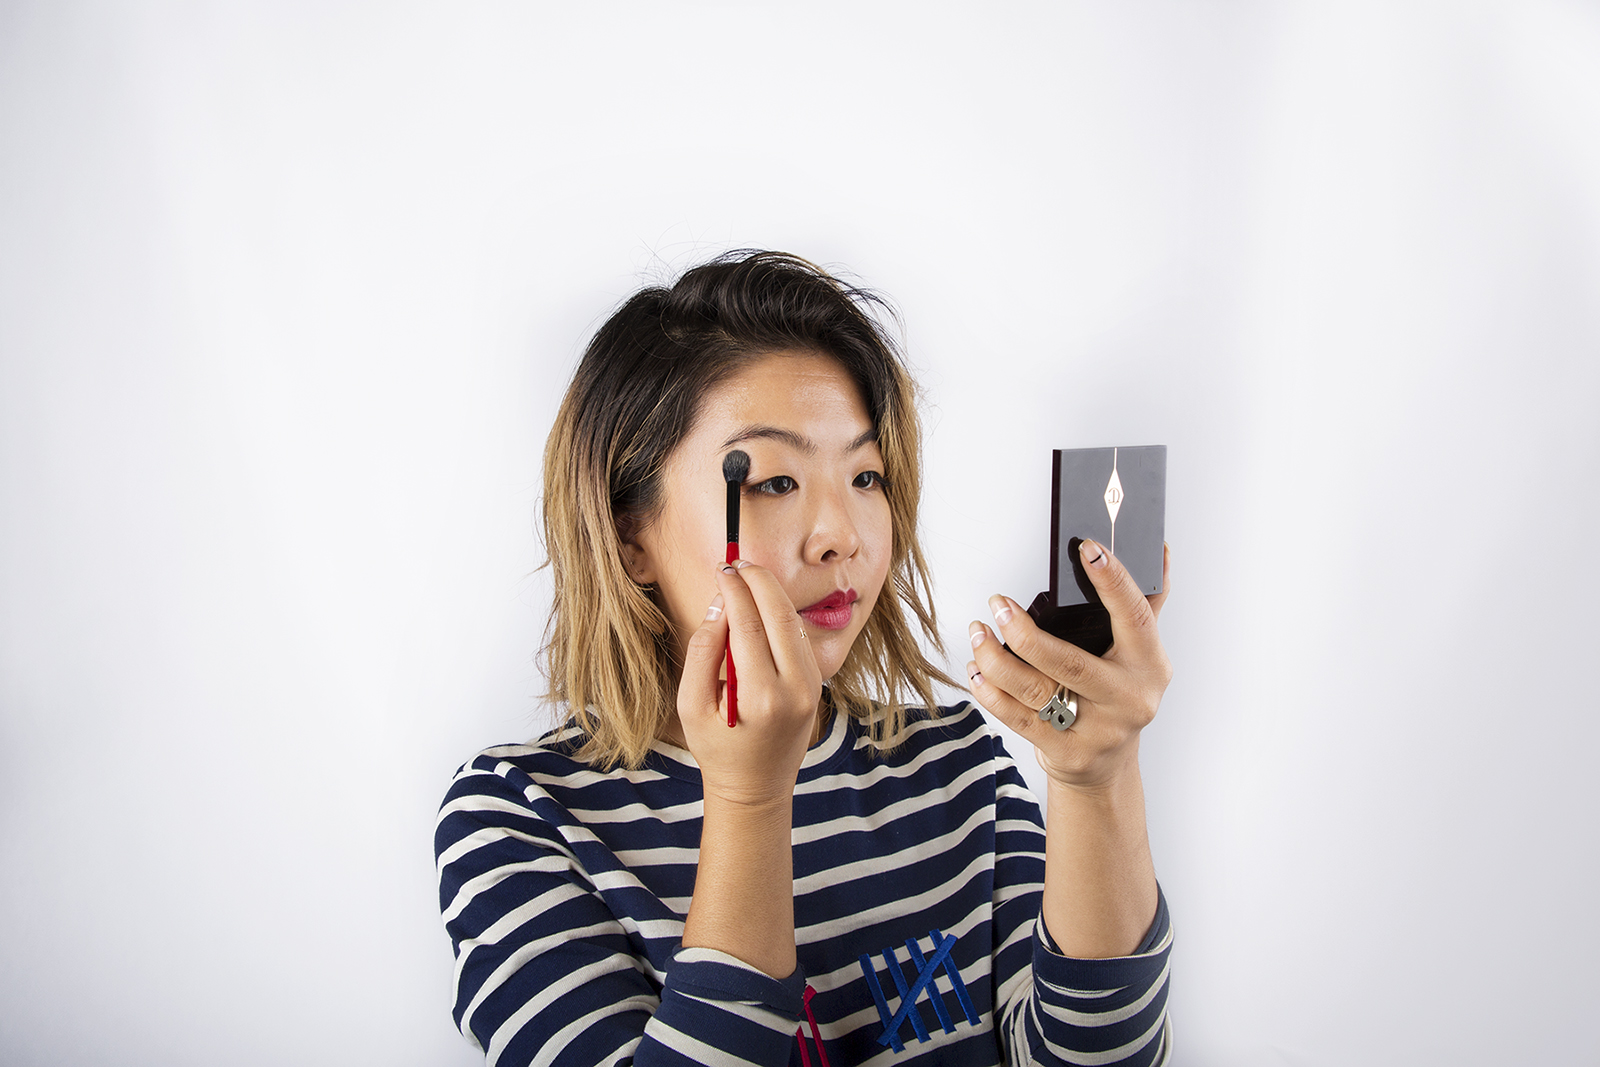 girl applying powder to face and looking in handheld mirror